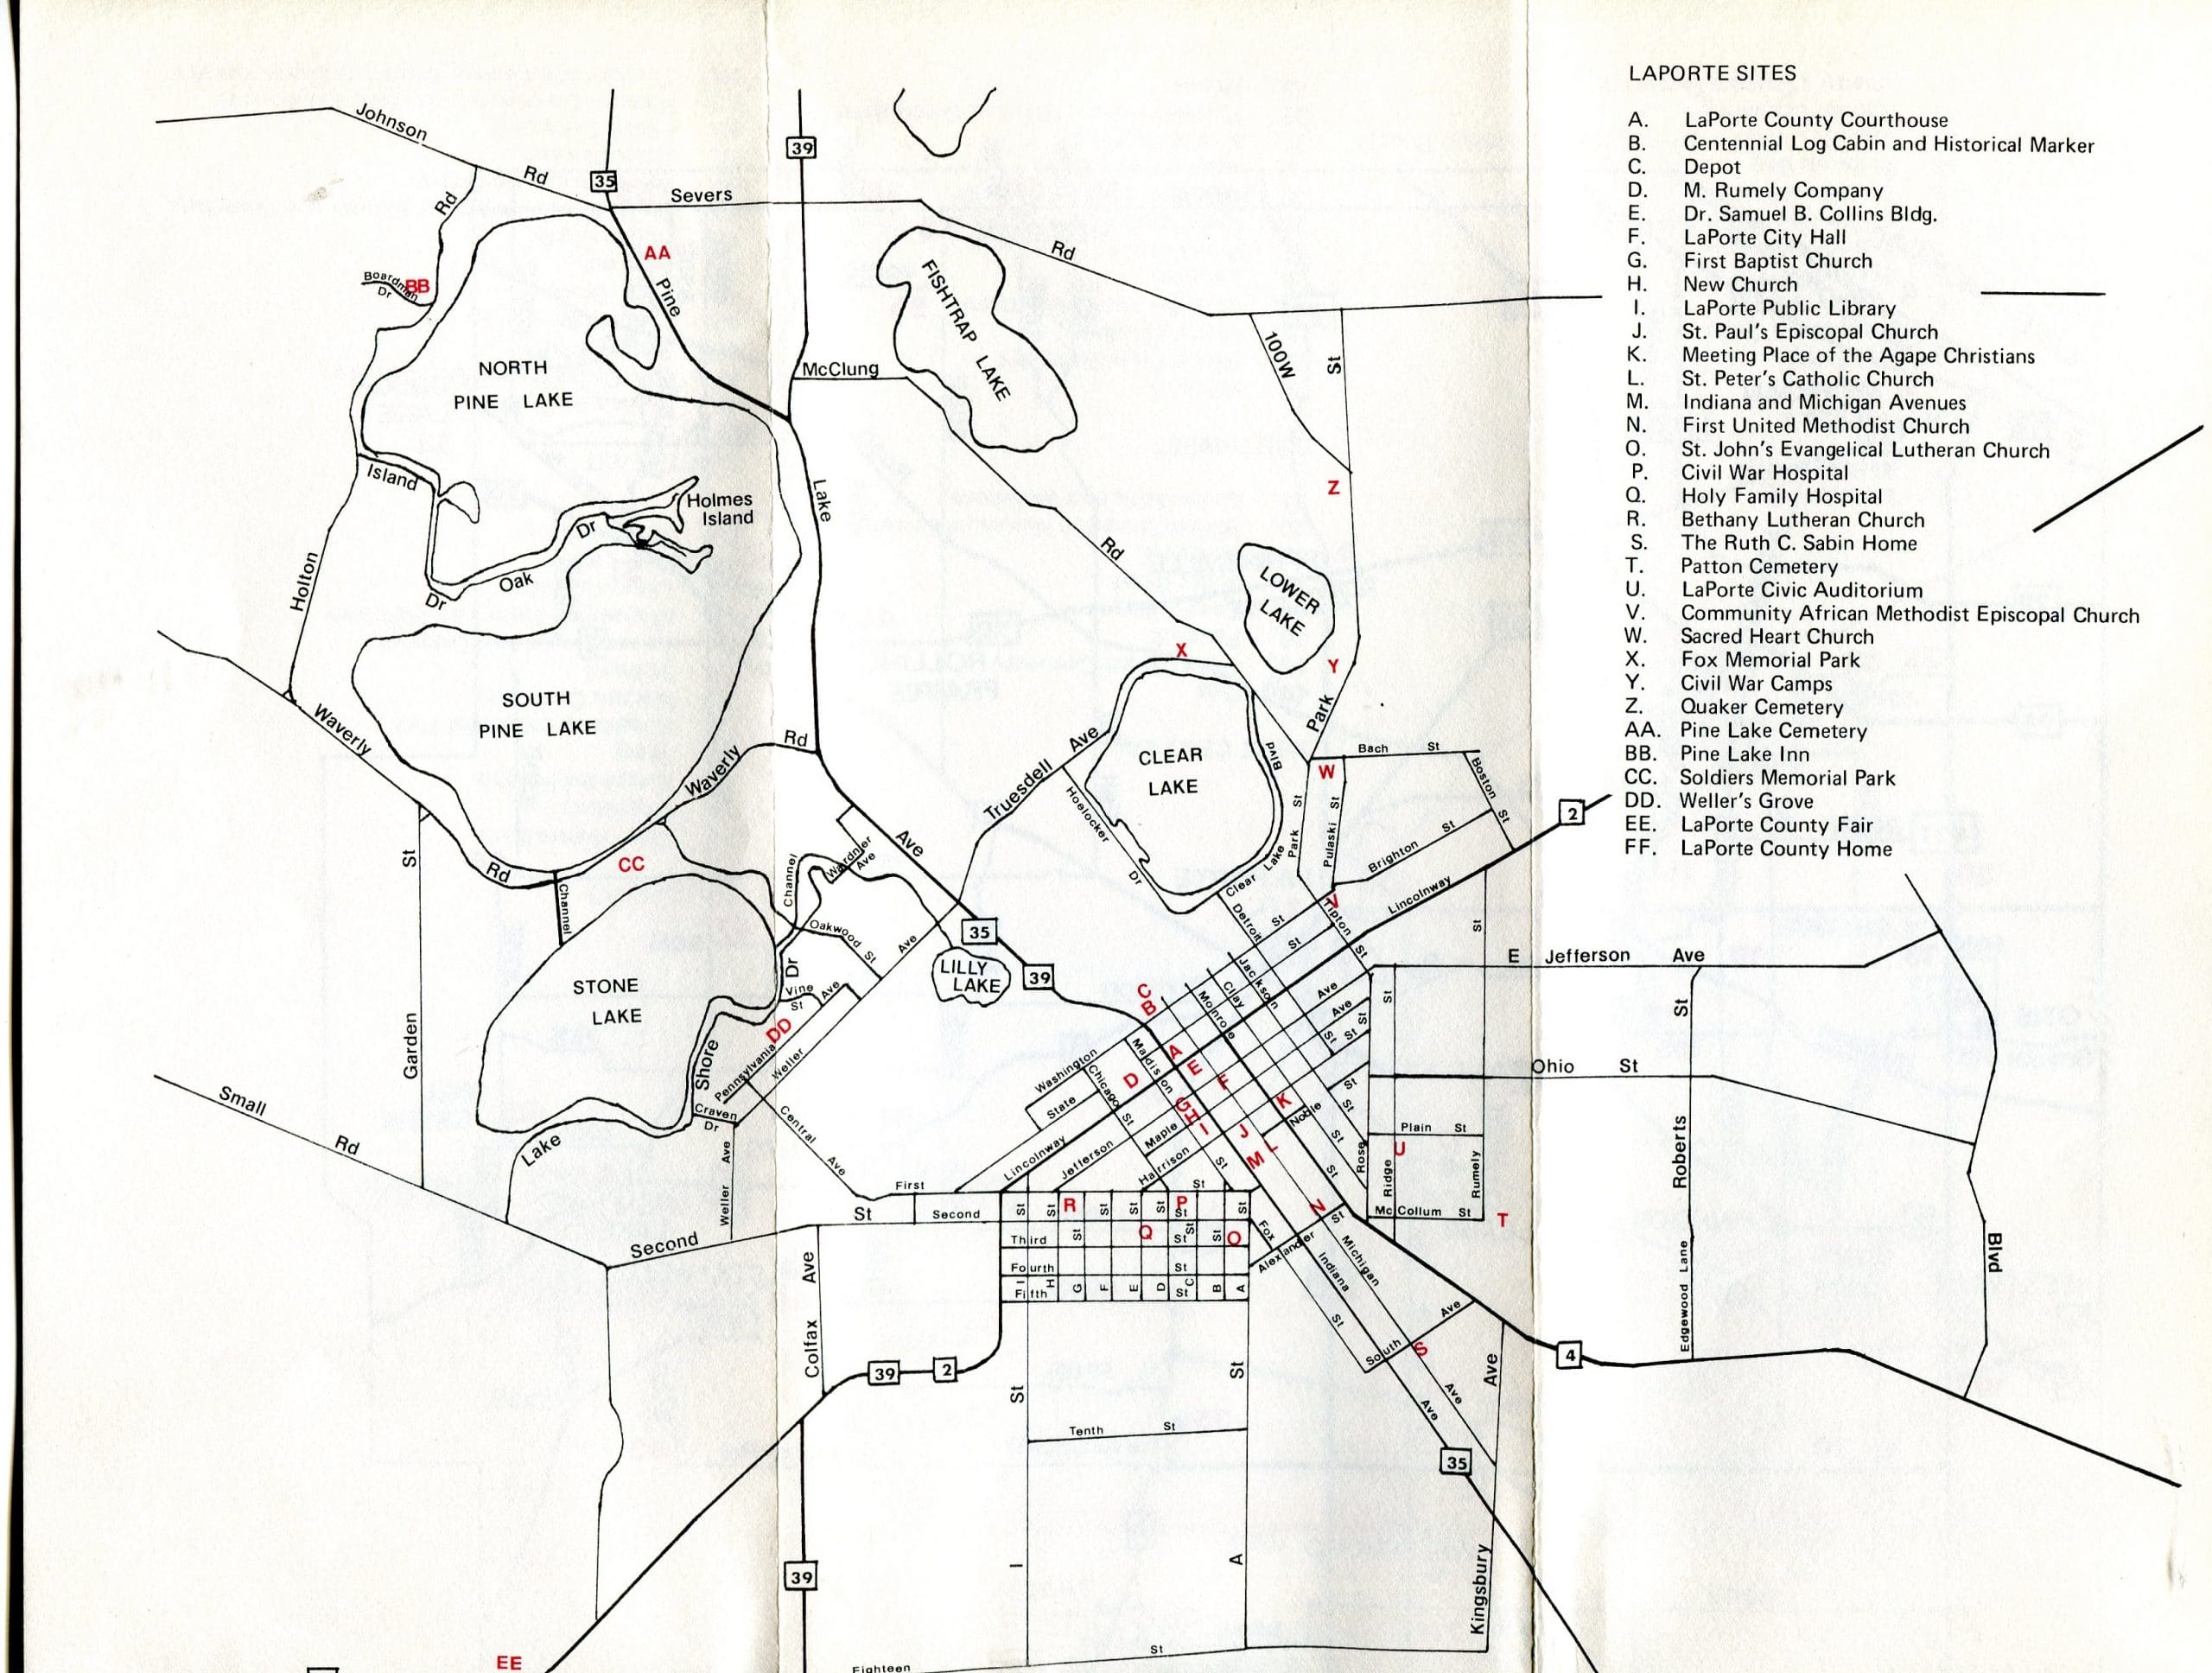 Portable LaPorte County -- map of LaPorte sites